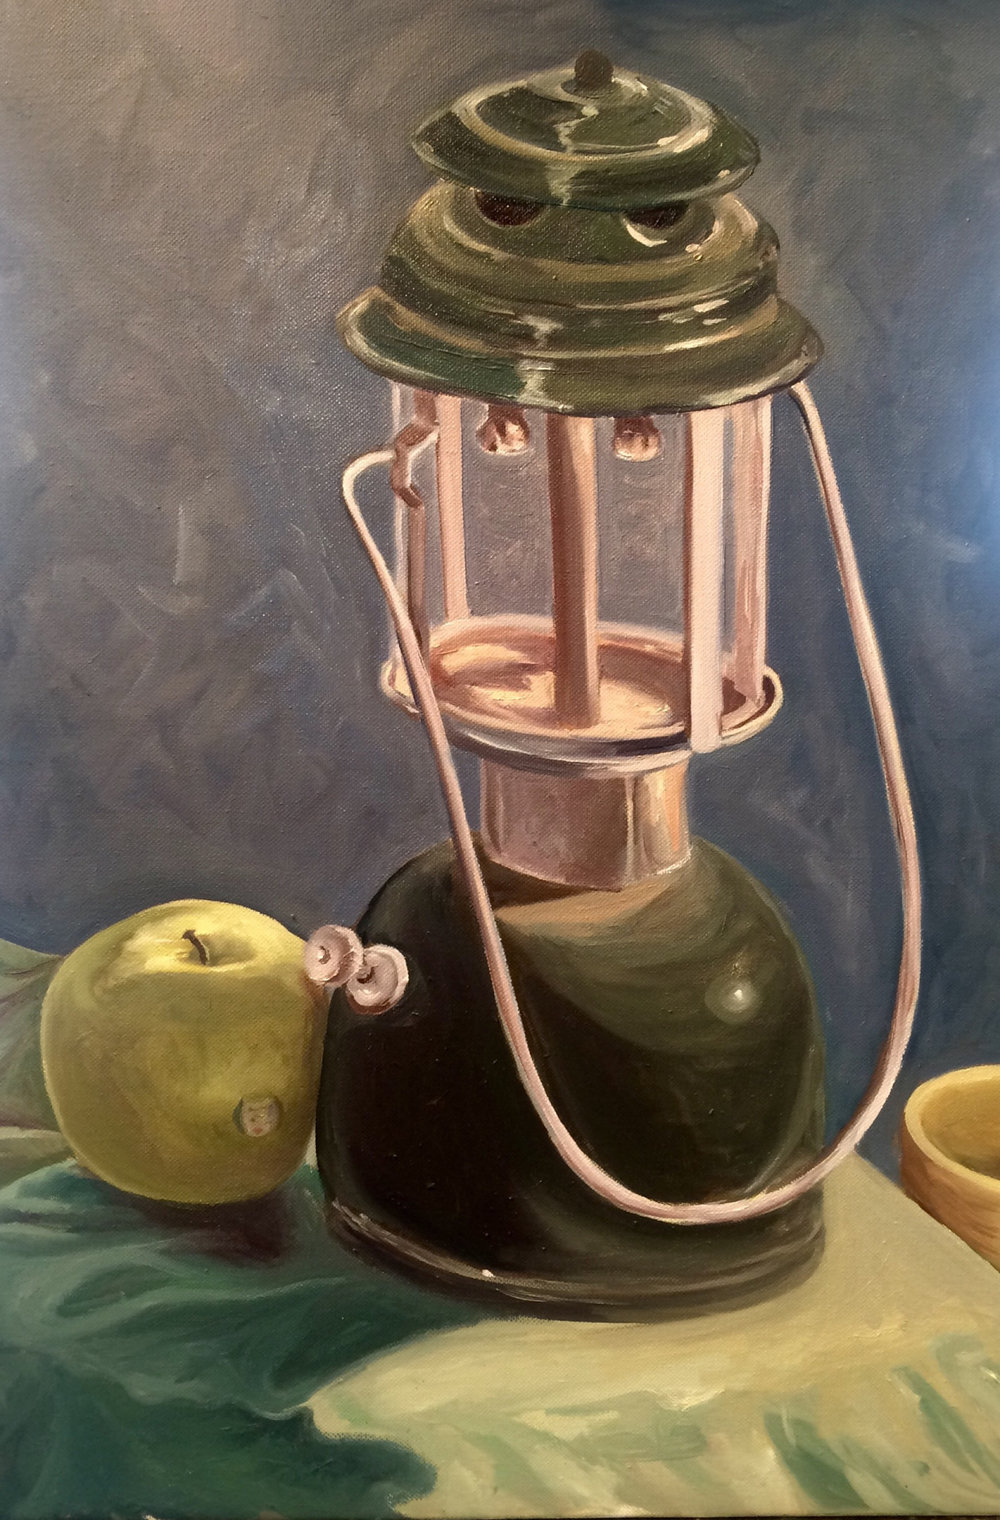 Still Life in Green   2016. Oil on canvas. 24 x 30.